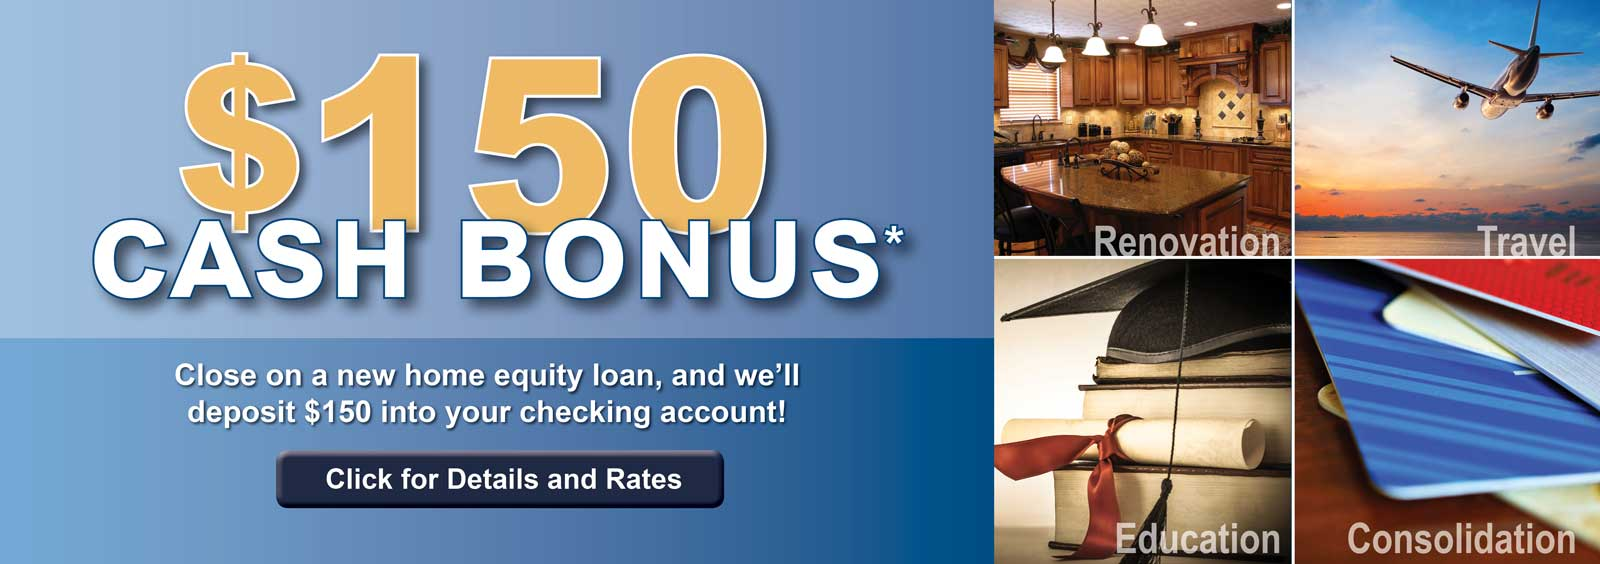 150 Cash Bonus* when you close on a new home equity loan